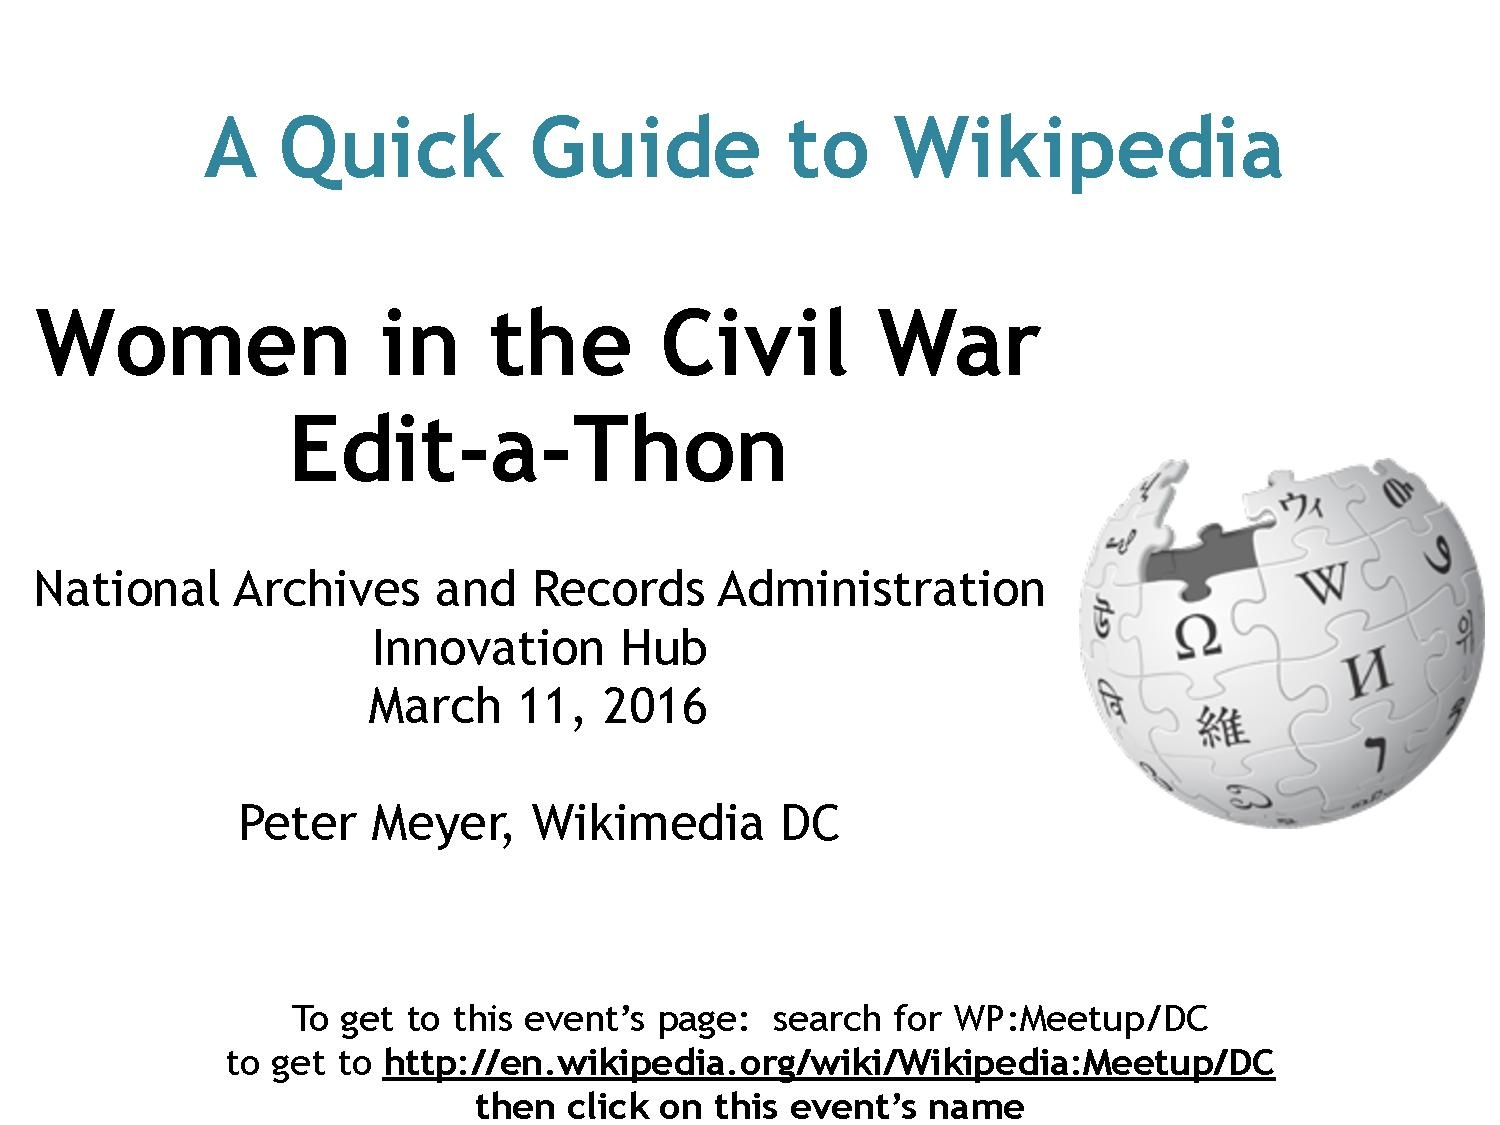 Wikipedia:Meetup/DC/NARA/Civil War - Wikipedia